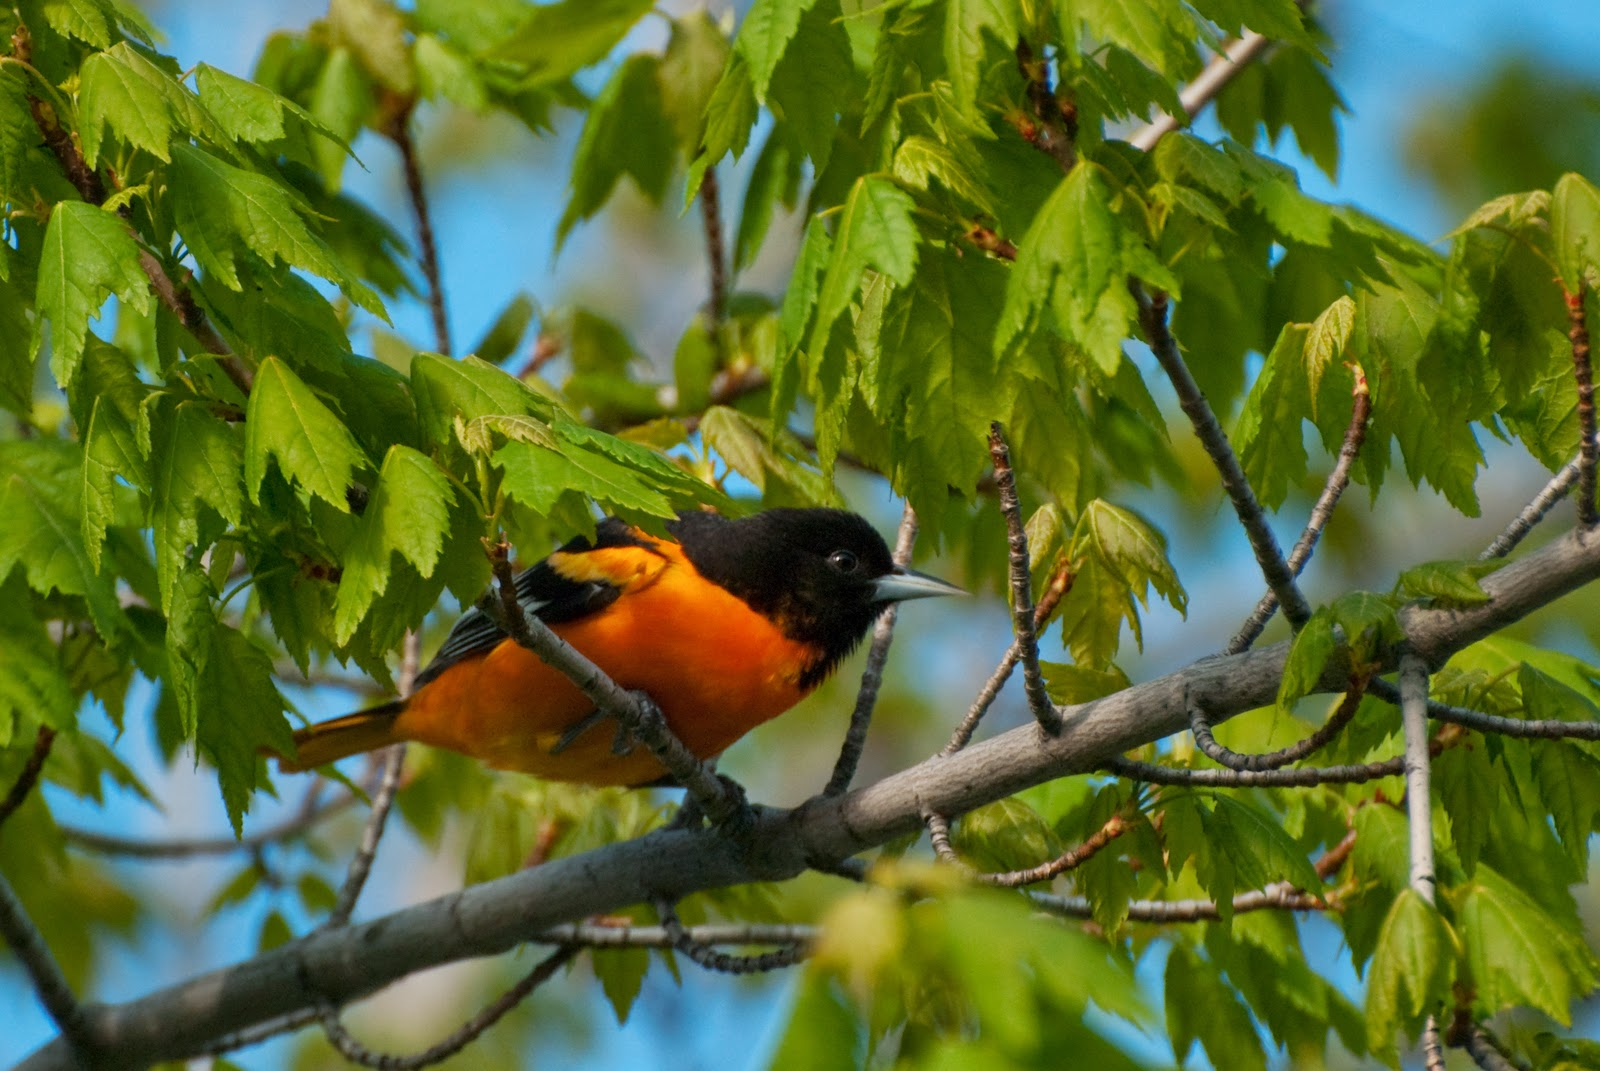 Male Black and orange Batimore Oriole sitting in Ontario tree. One more reason to plant trees in Kawartha Lakes. free image linked to wikipedia source.